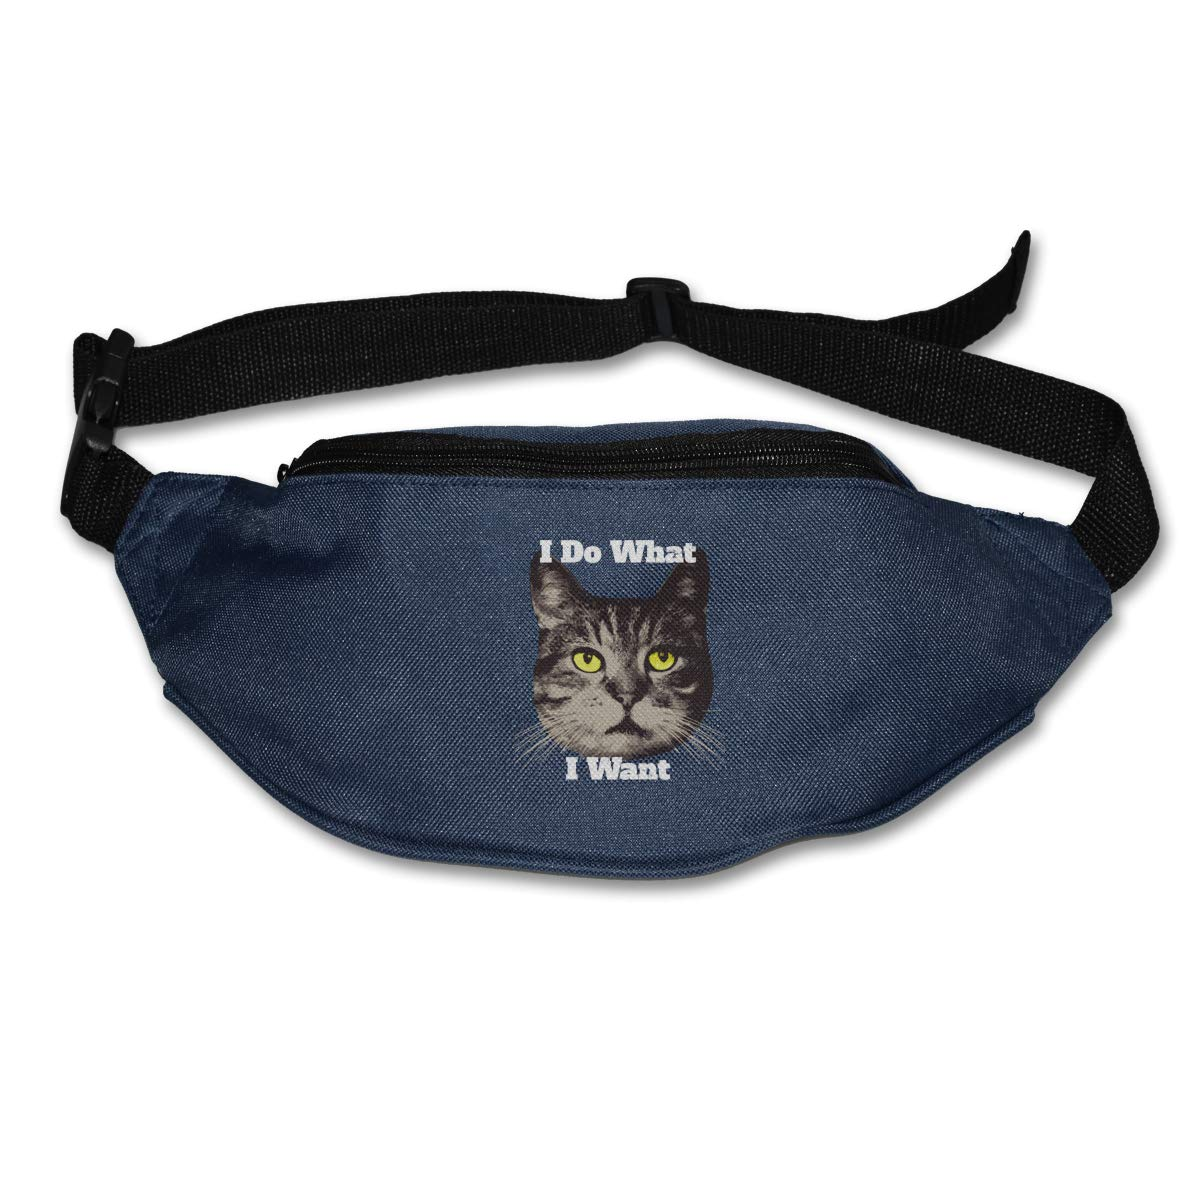 I Do What I Want Mad Cat Face Sport Waist Packs Fanny Pack Adjustable For Run